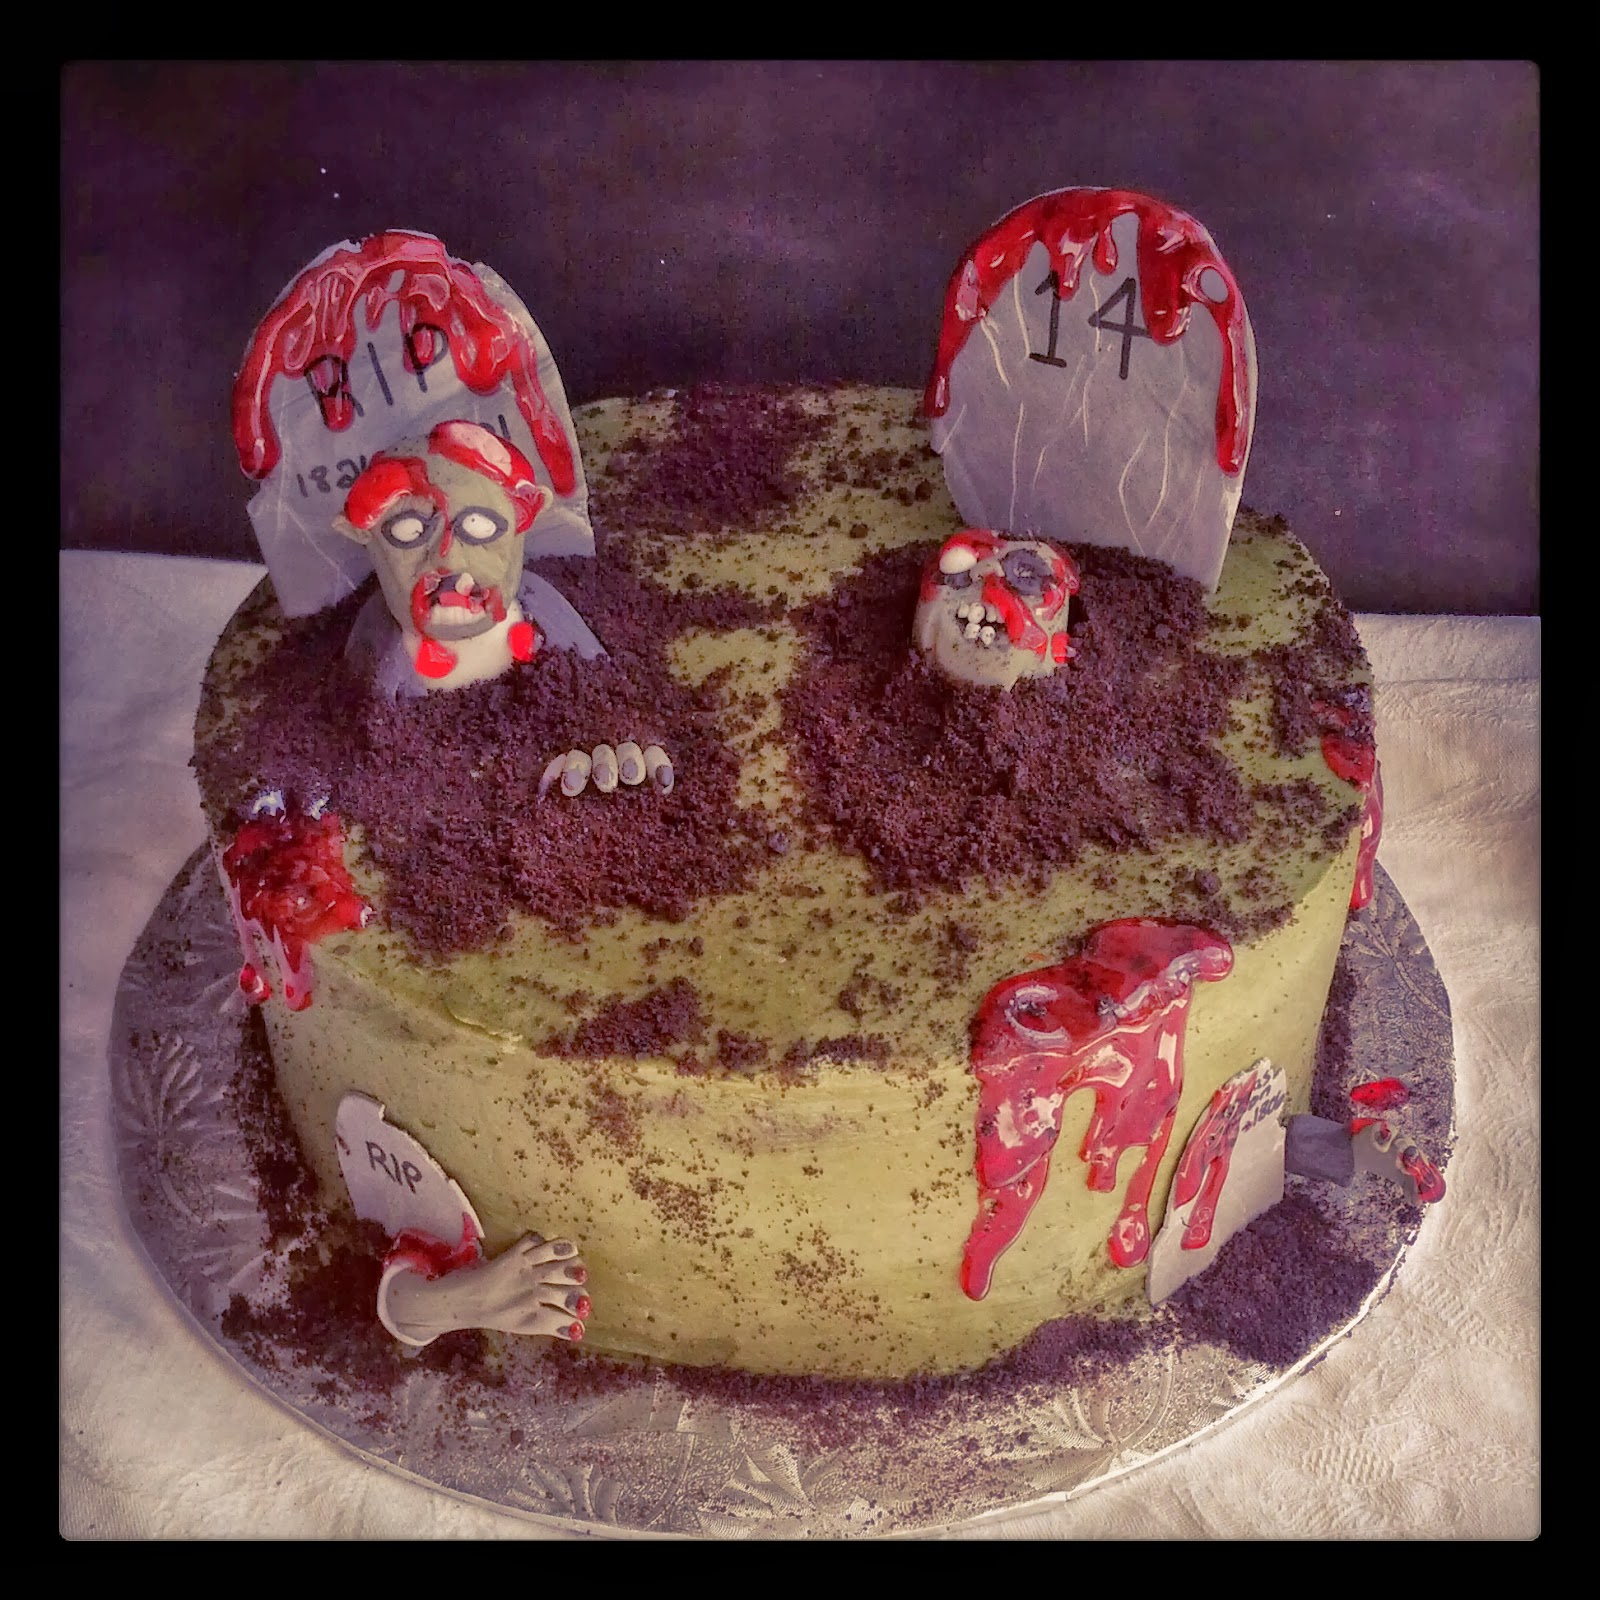 Second Generation Cake Design Graveyard Zombie Birthday Cake